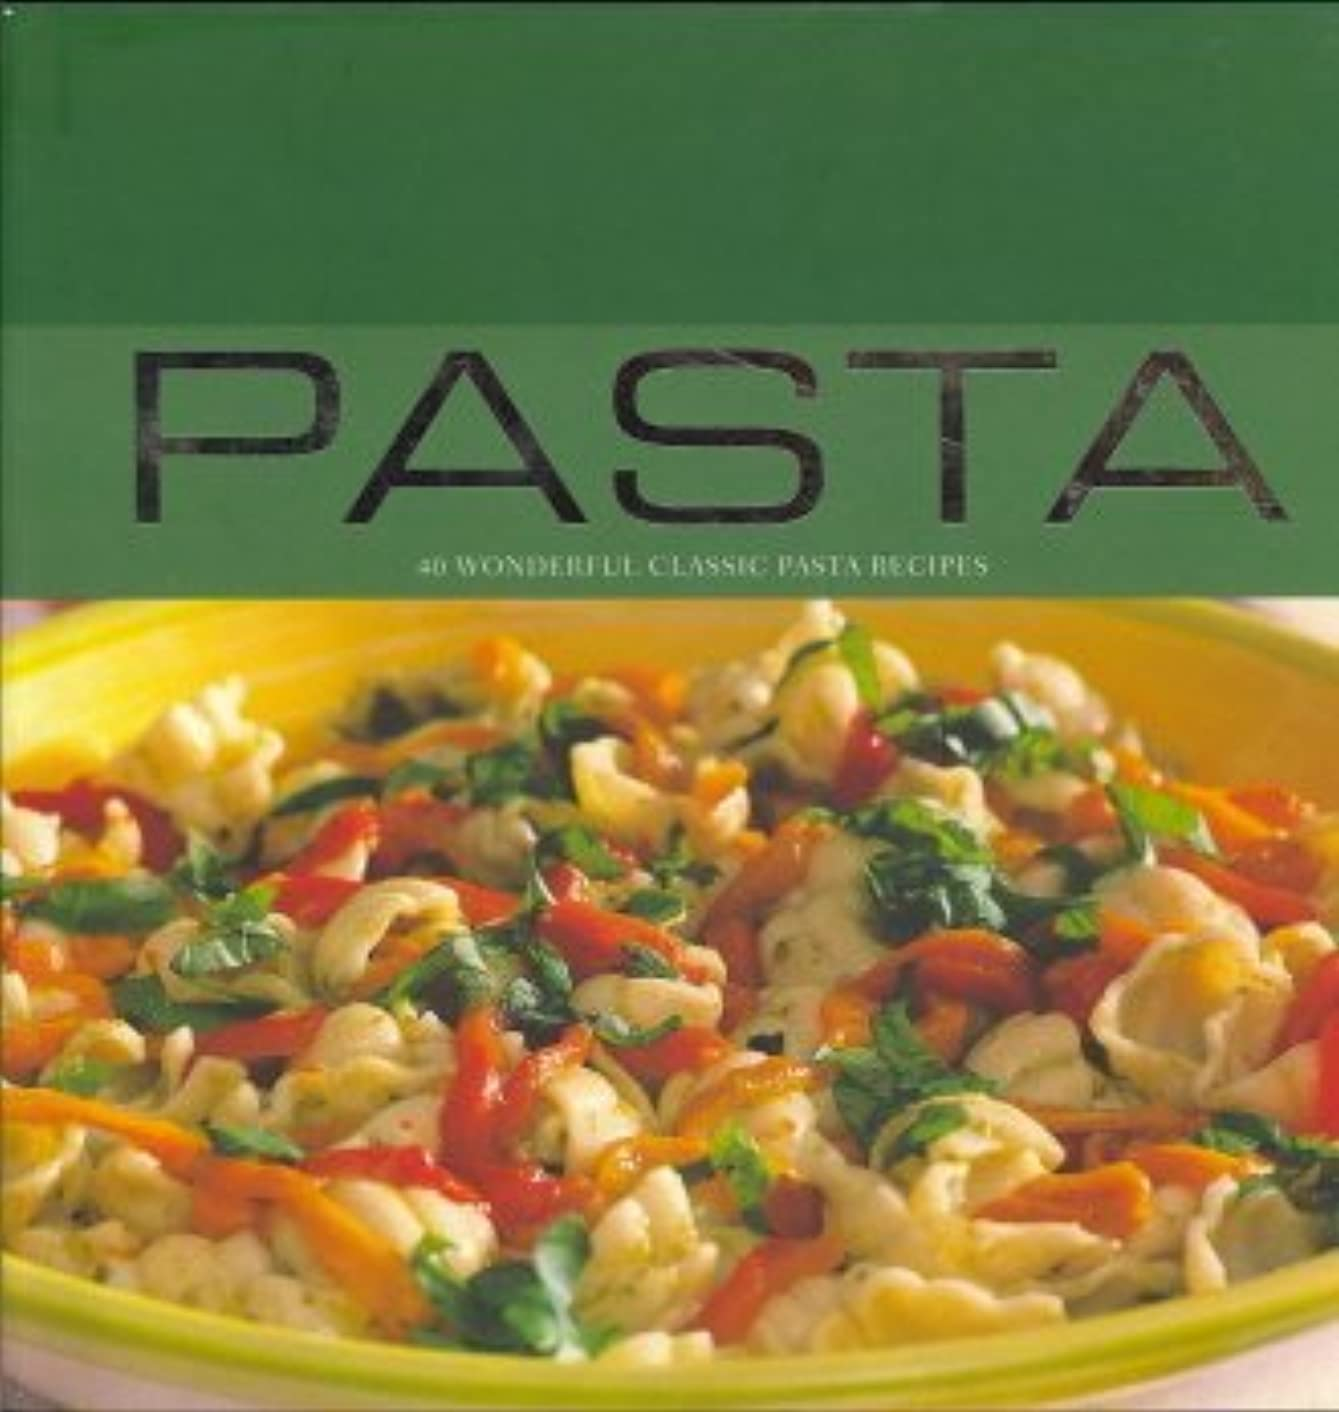 Pasta: 40 Wonderful Classic Pasta Recipes